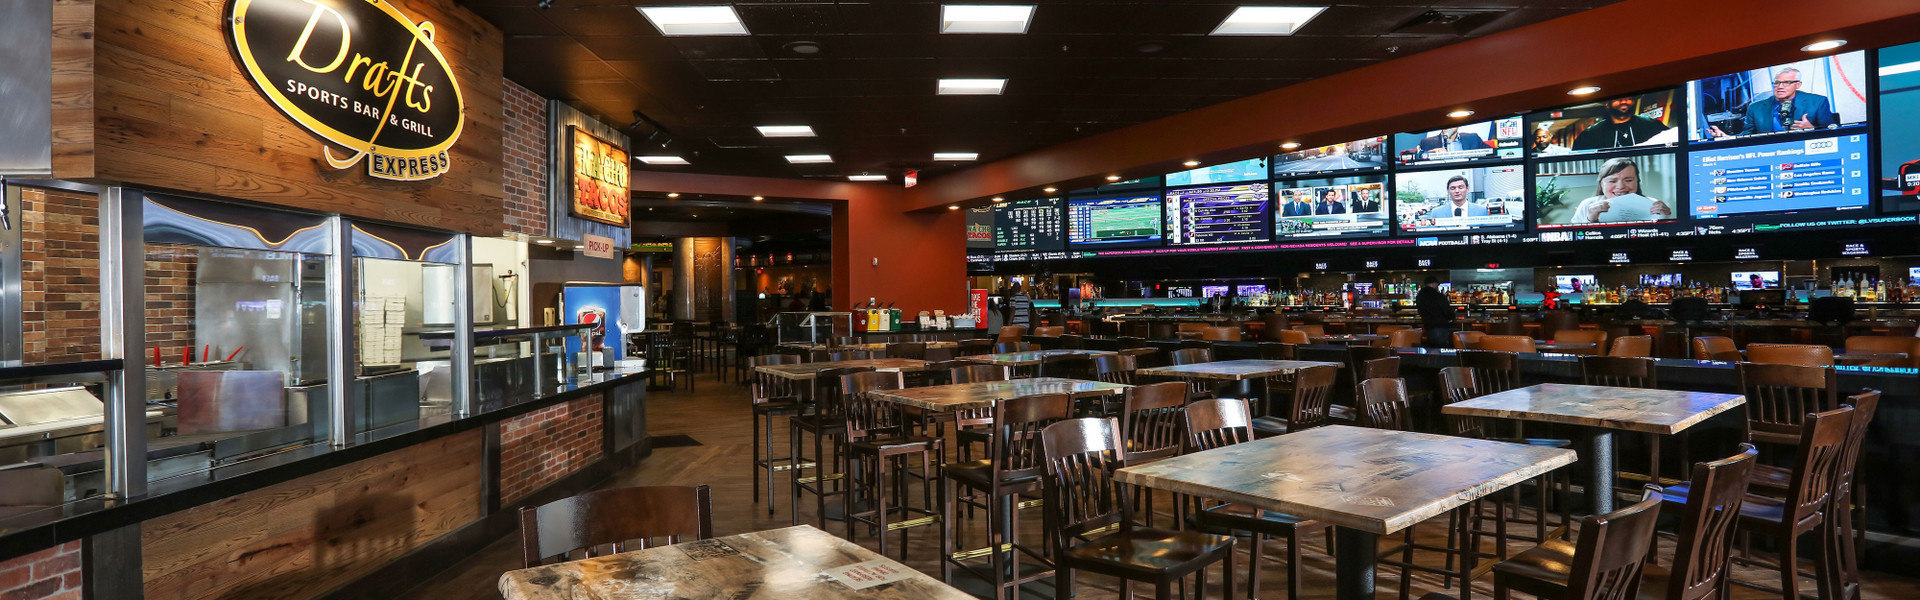 Vegas Sports Bar at our Las Vegas Hotel and Casino | Drafts Sports Bar & Grill